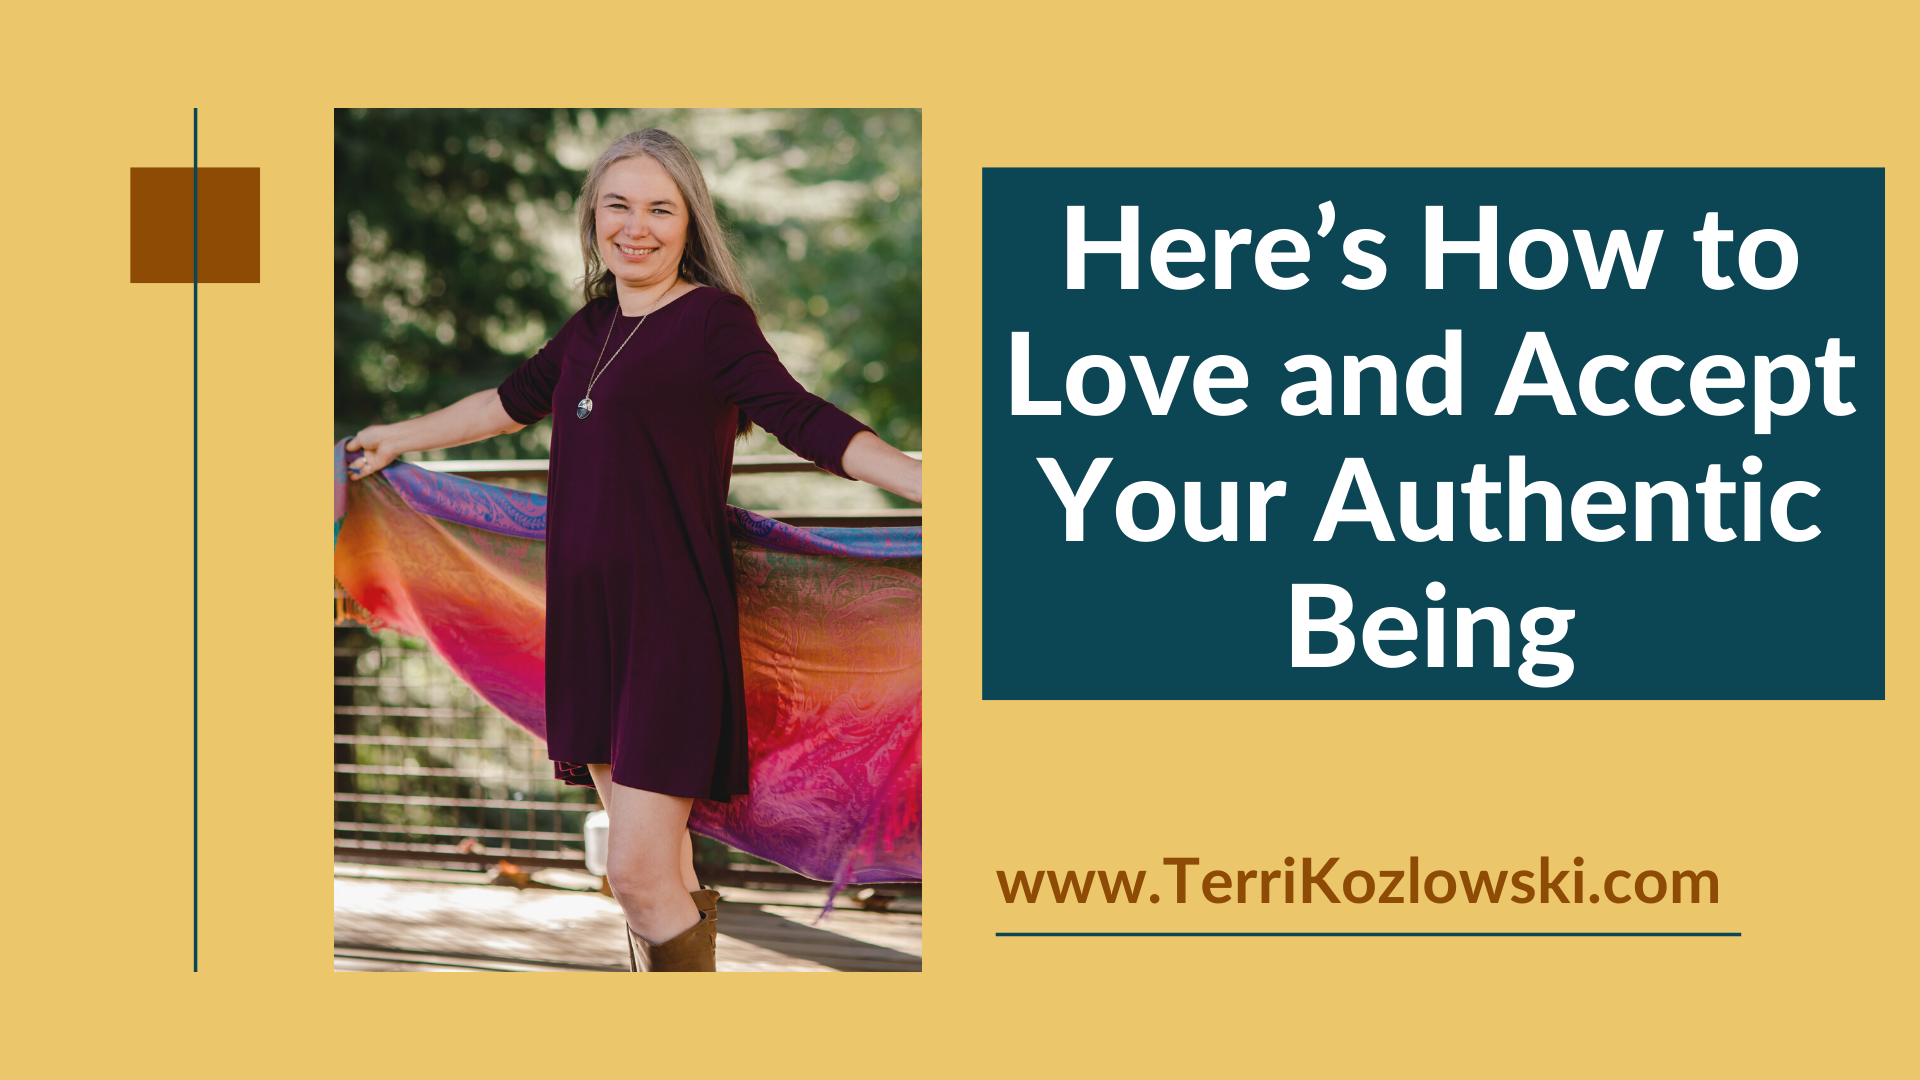 Authentic Self-Acceptance is Love